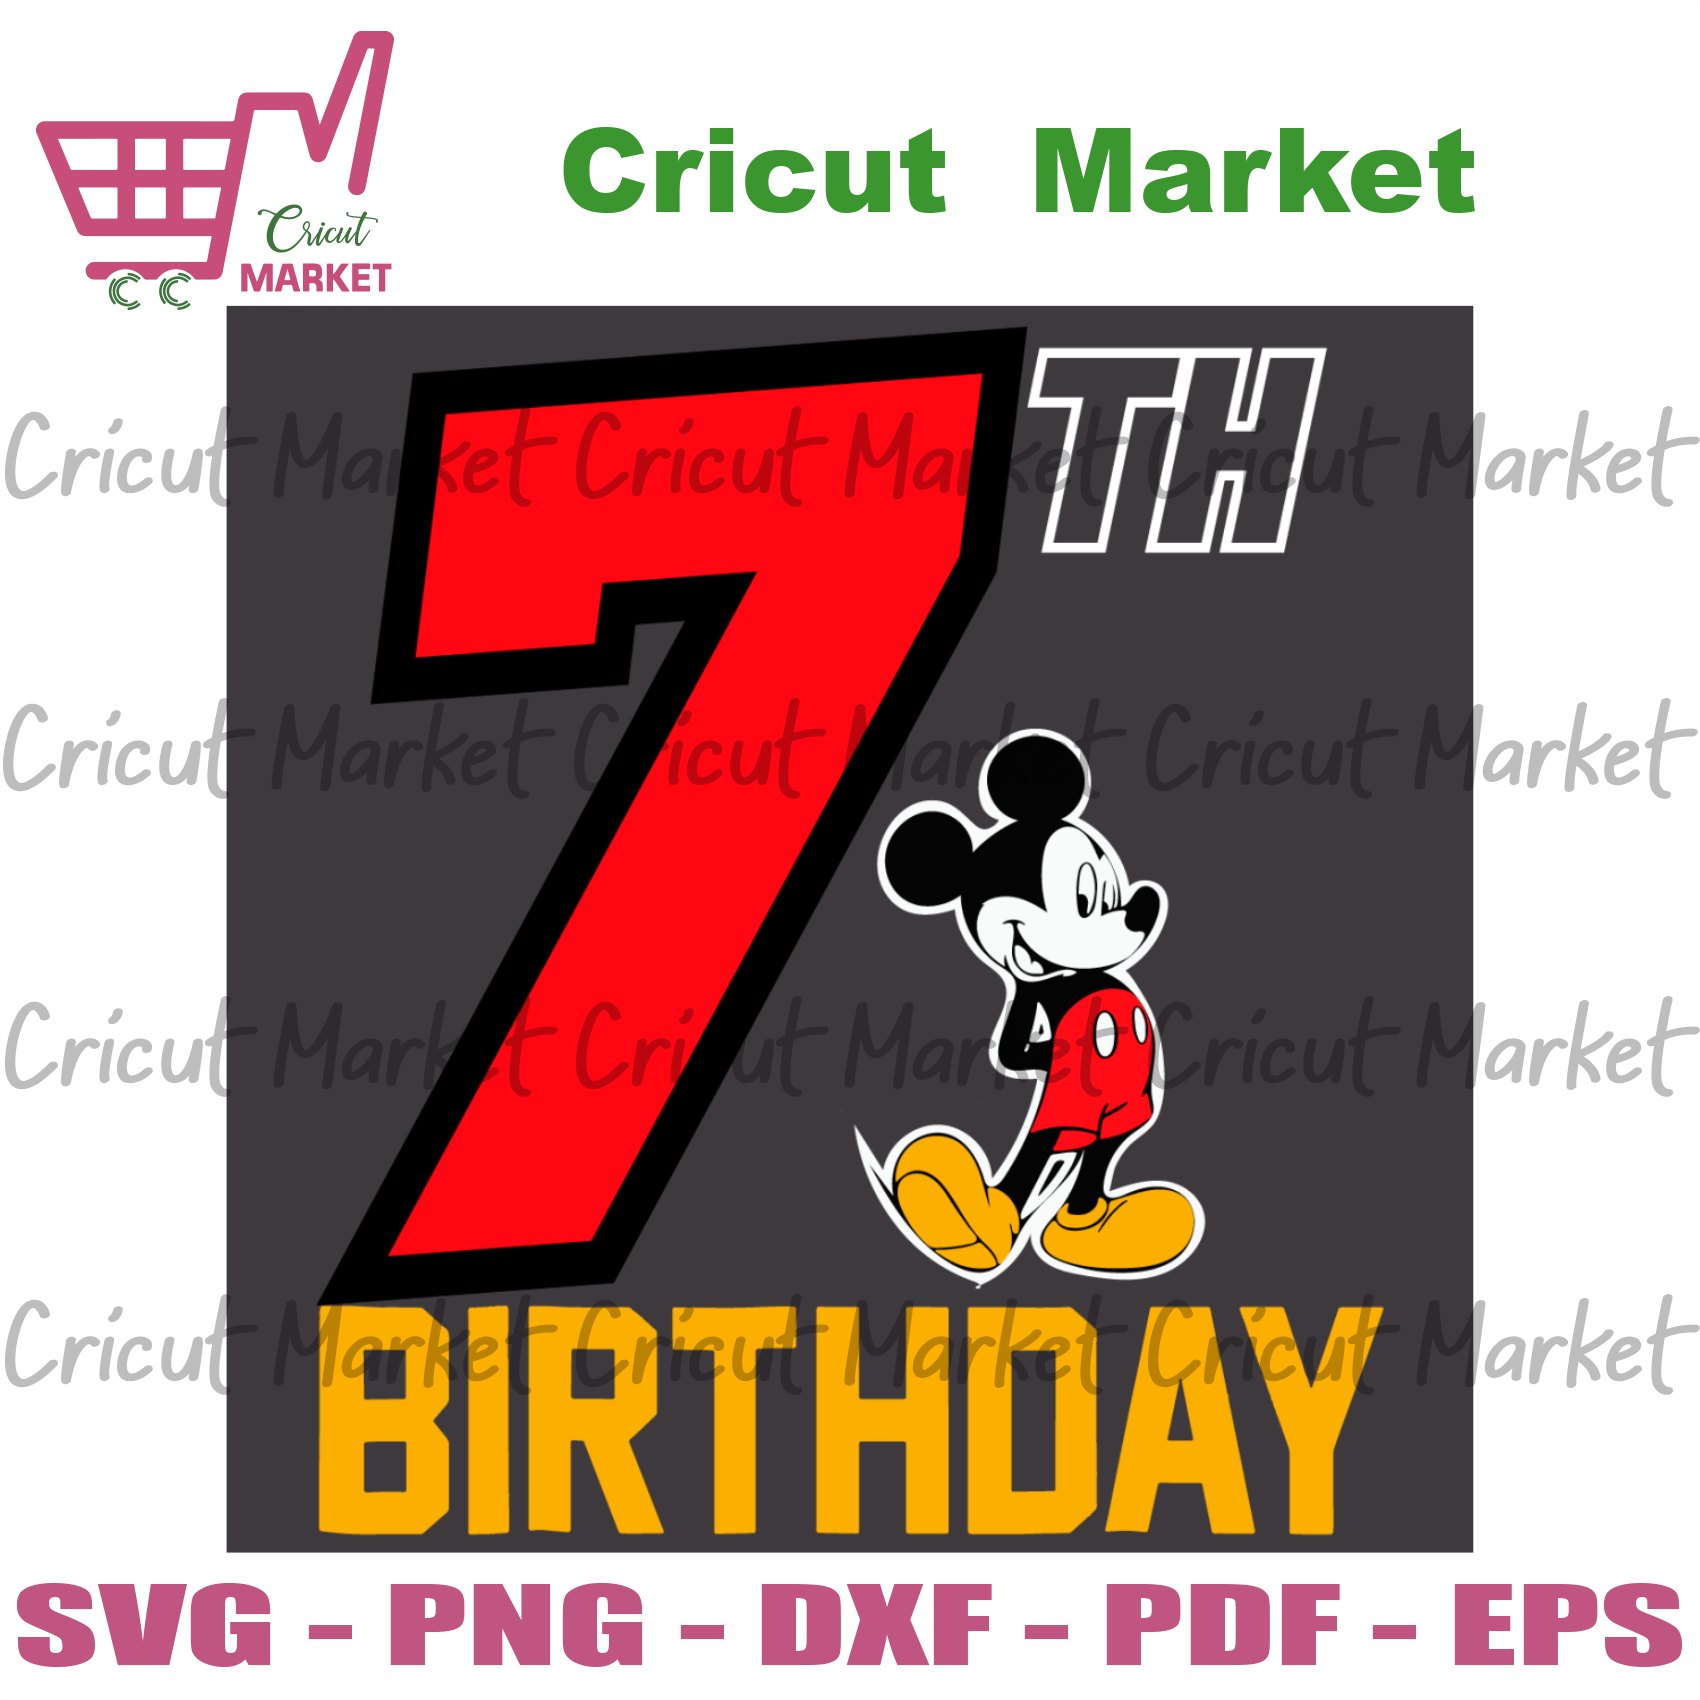 Mickey 7th Birthday Svg, Birthday Svg, 7th Birthday Svg, 7 Years Old Svg, Mickey Svg, Mickey Birthday Svg, 7 Years Old Girl Svg, 7 Years Old Boy Svg, Birthday Gifts Svg, Birthday Party Svg, H